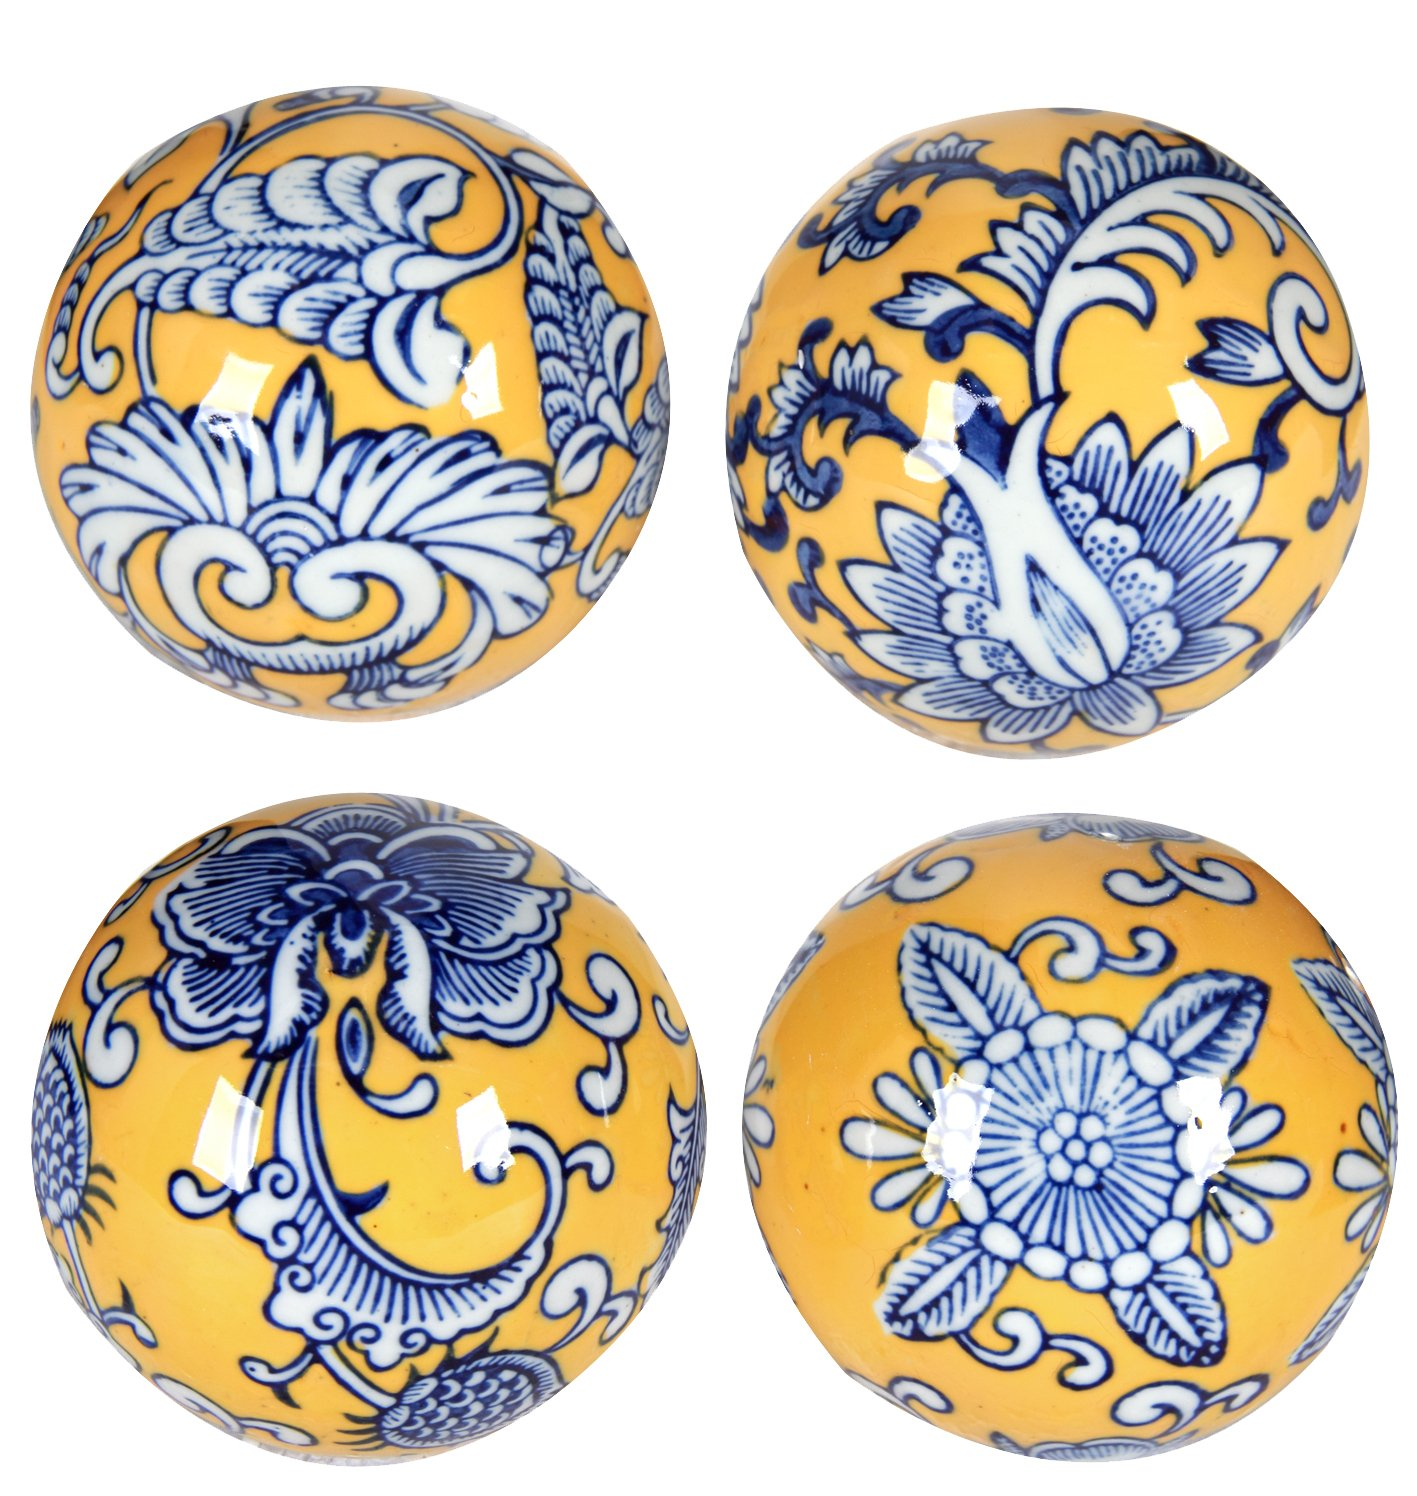 A&B Home Set of 4 Decorative Orbs by A&B Home